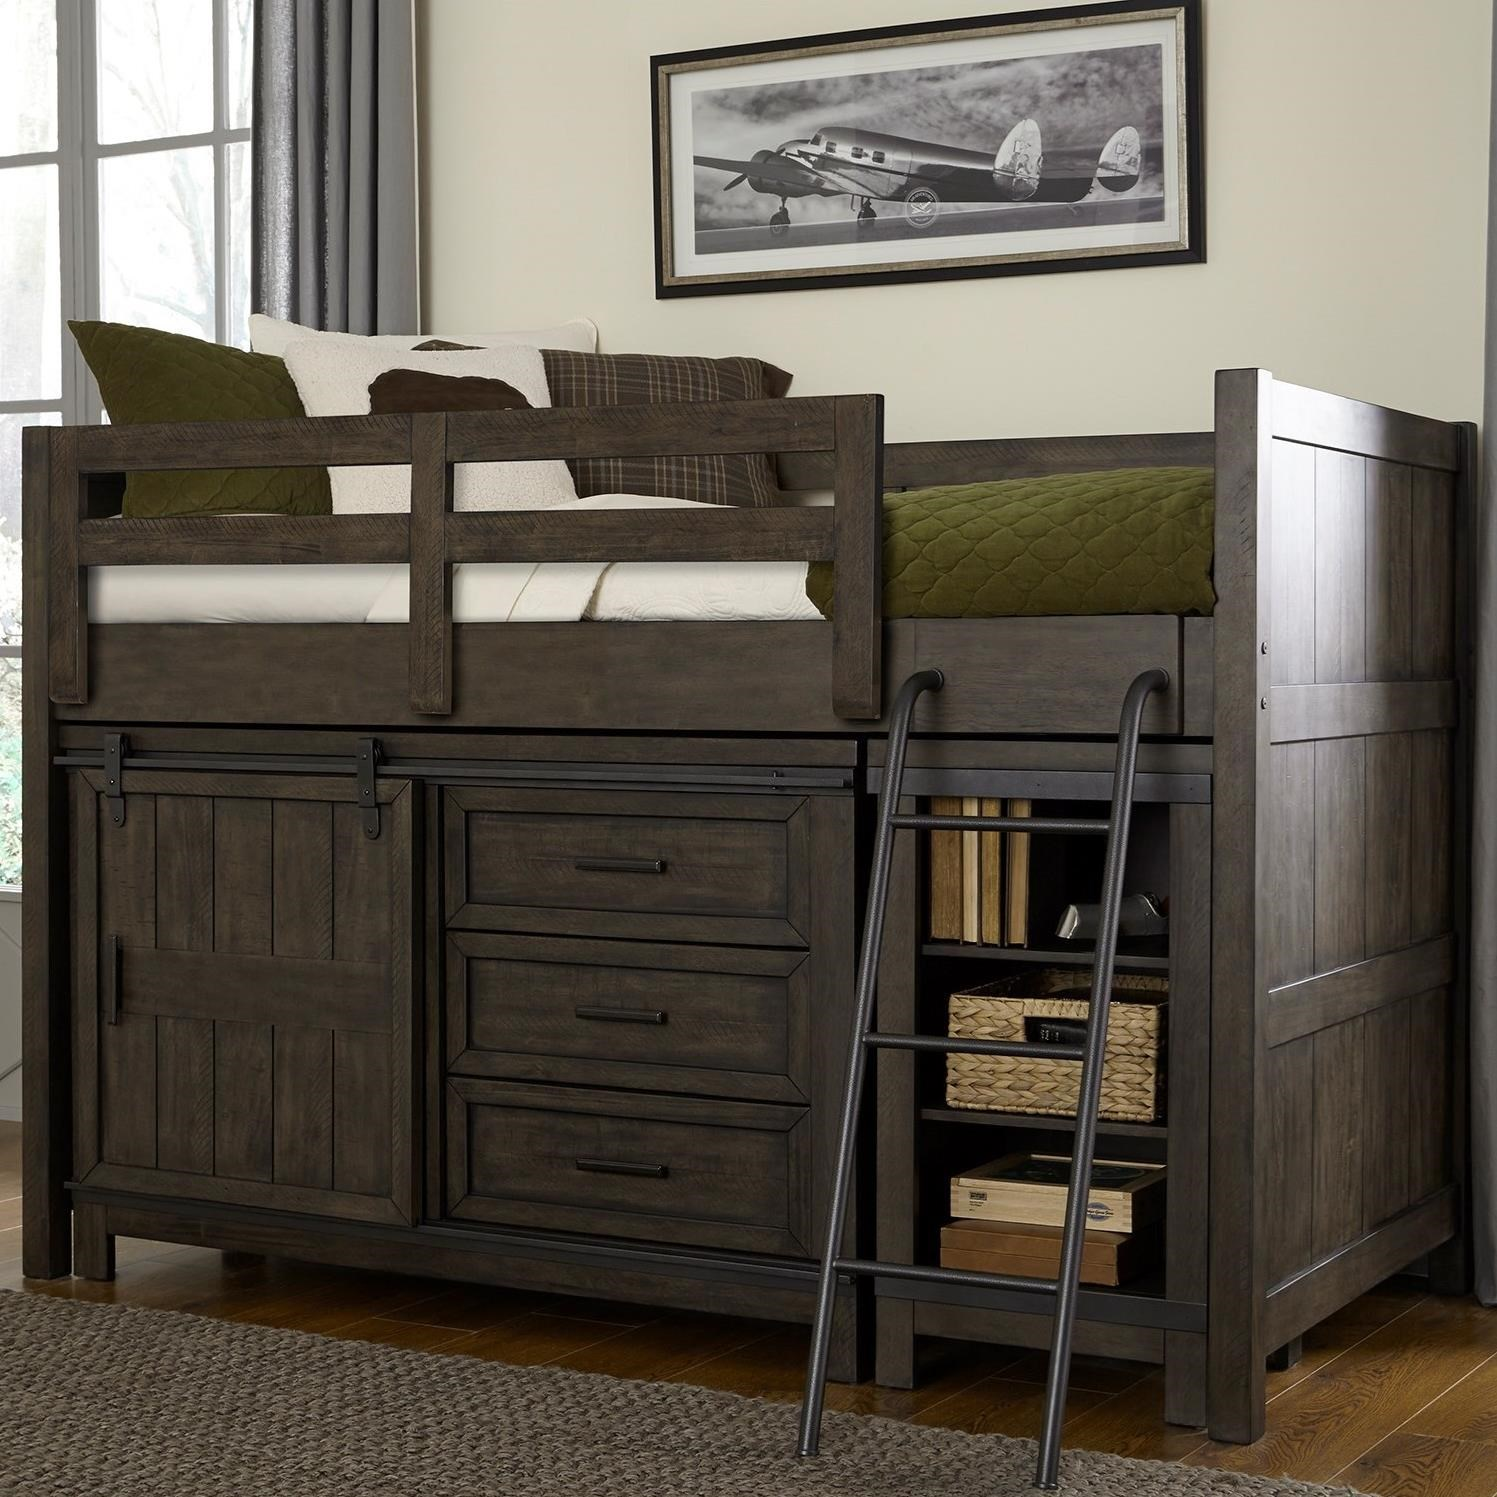 Thornwood Hills Twin Loft Bed by Liberty Furniture at VanDrie Home Furnishings